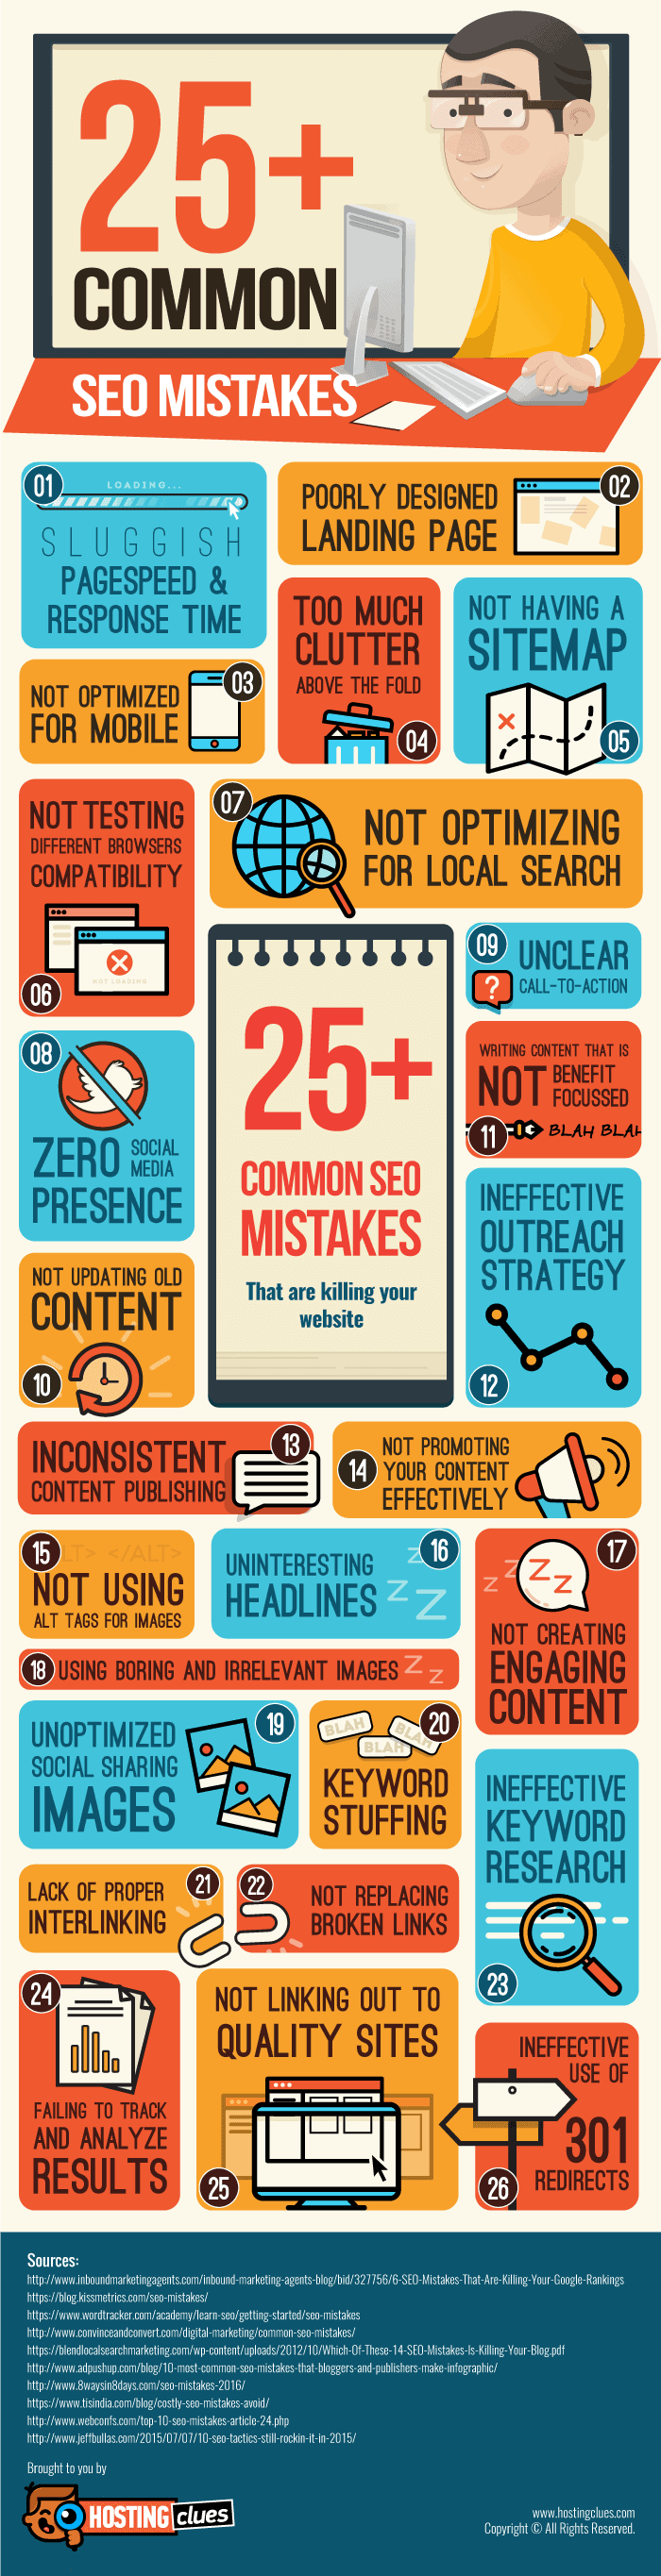 25+ Common SEO Mistakes That Are Killing Your Website[Infographic] by the team at Hosting Clues